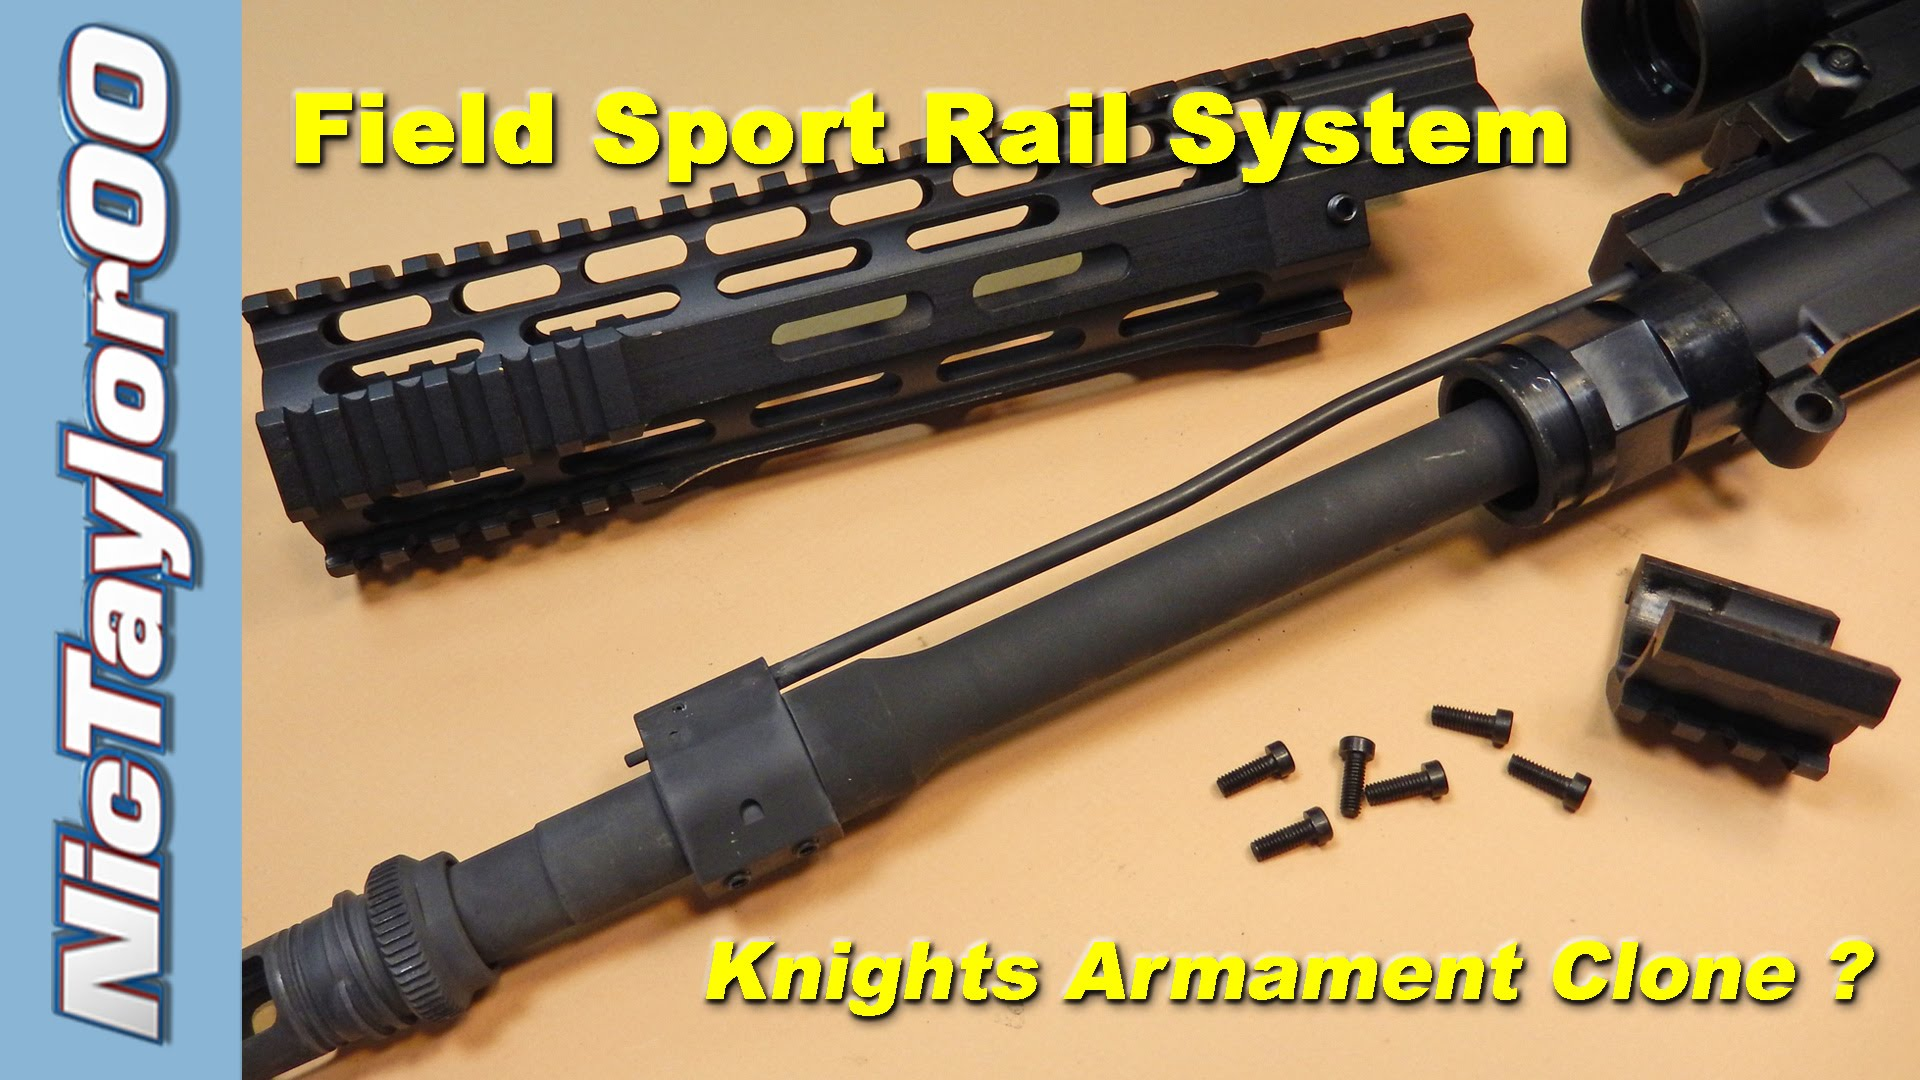 Field Sport AR15 Handguard REVIEW & Install Instructions - VERY EASY